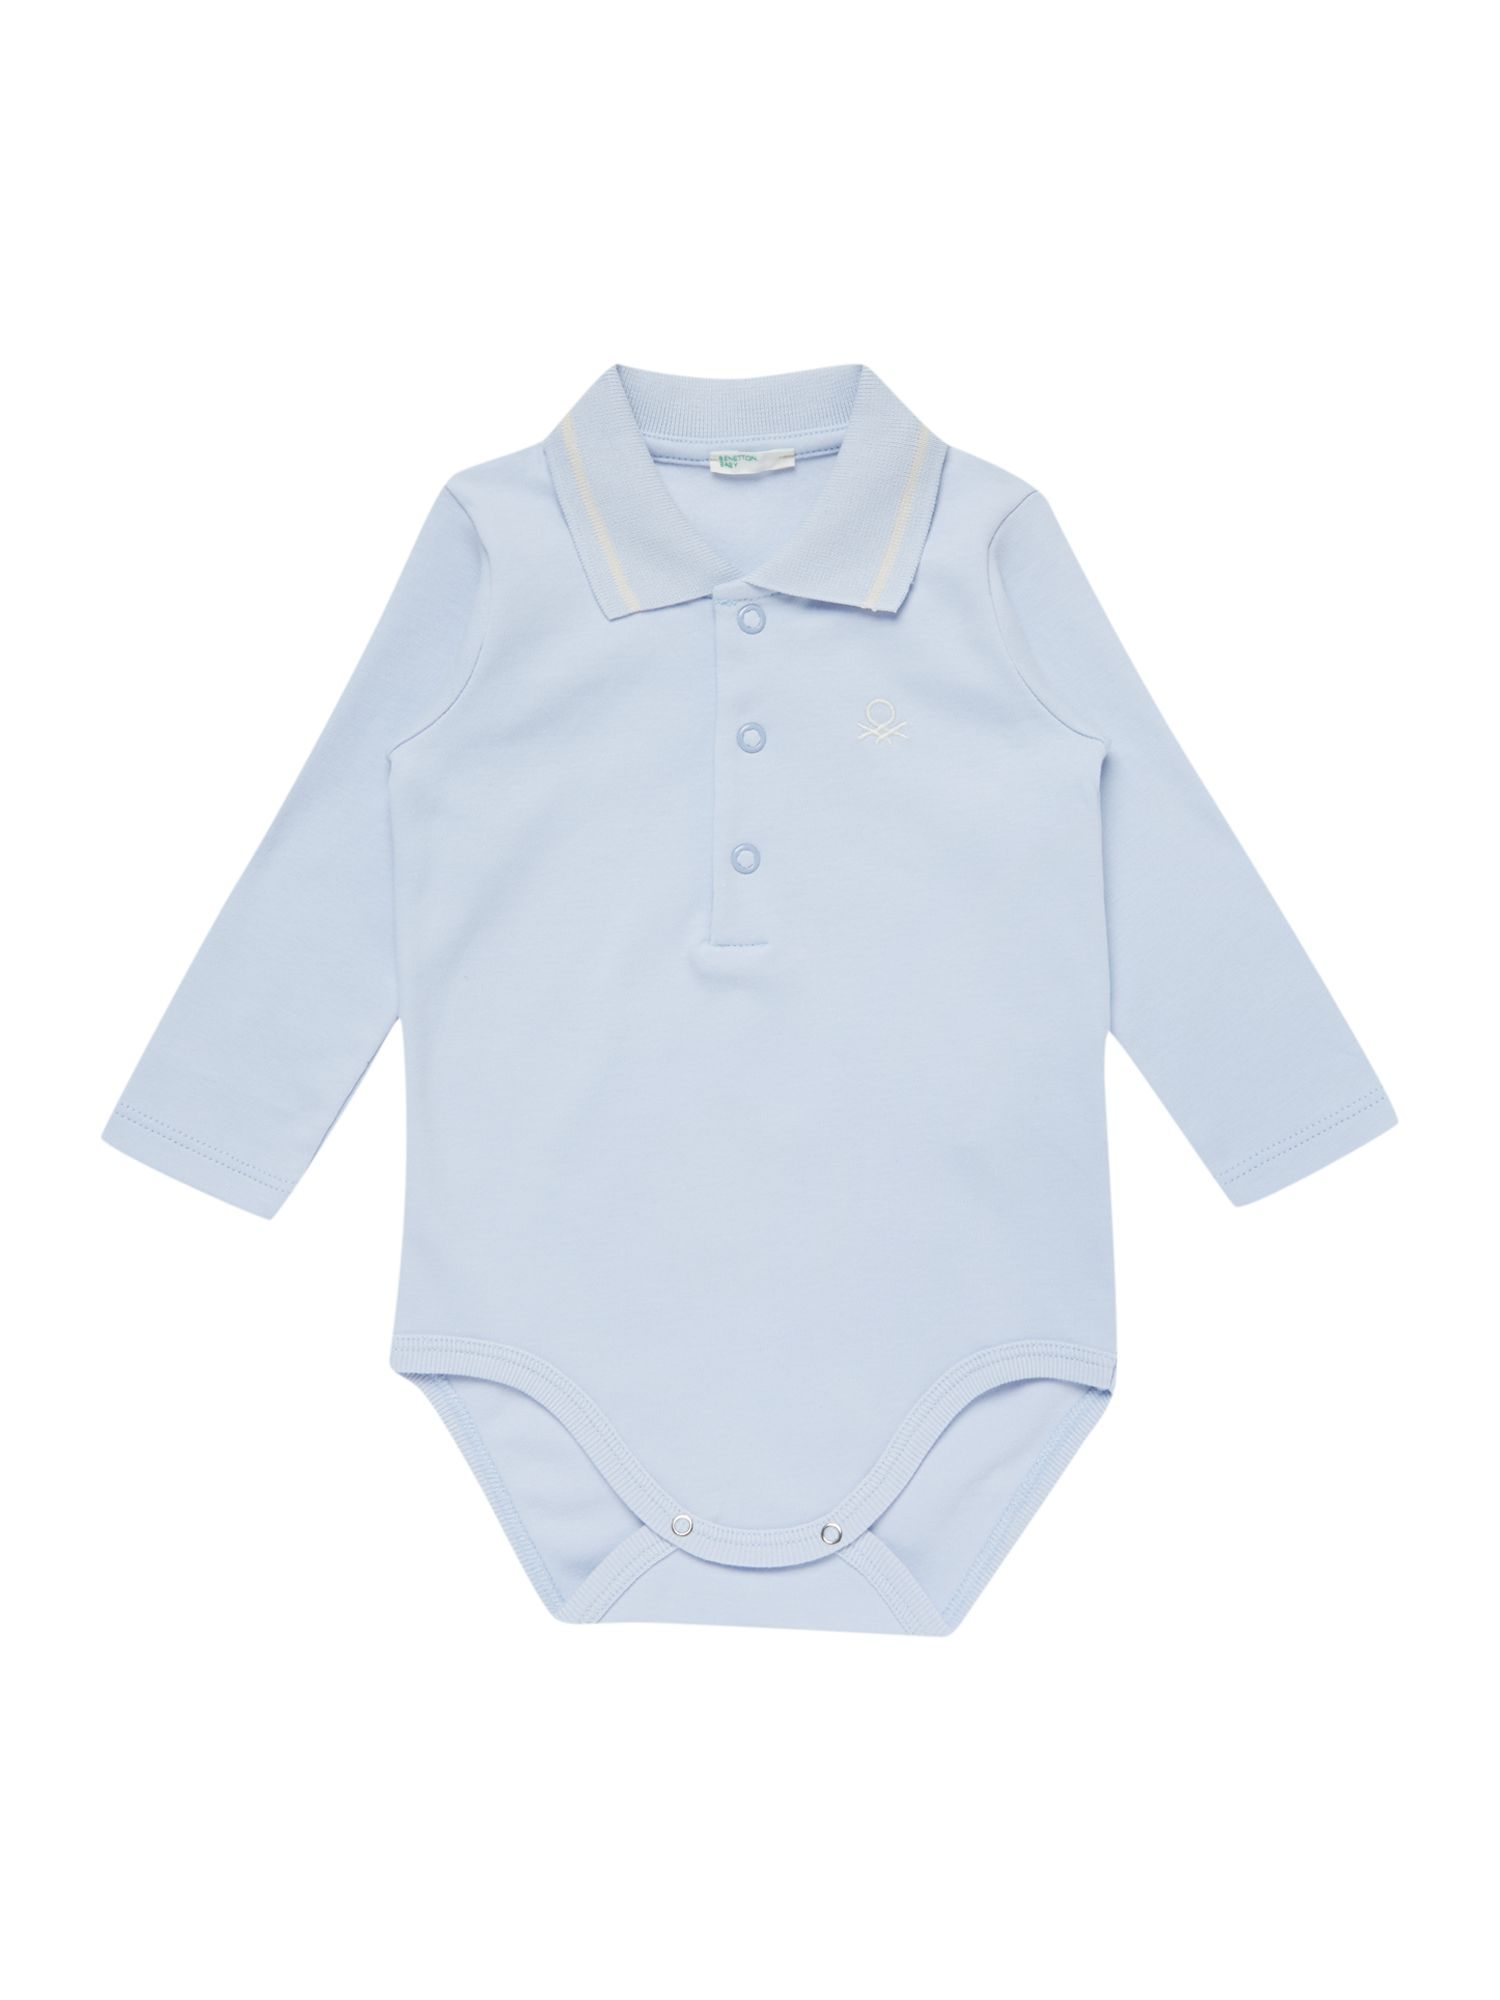 Baby polo body suit